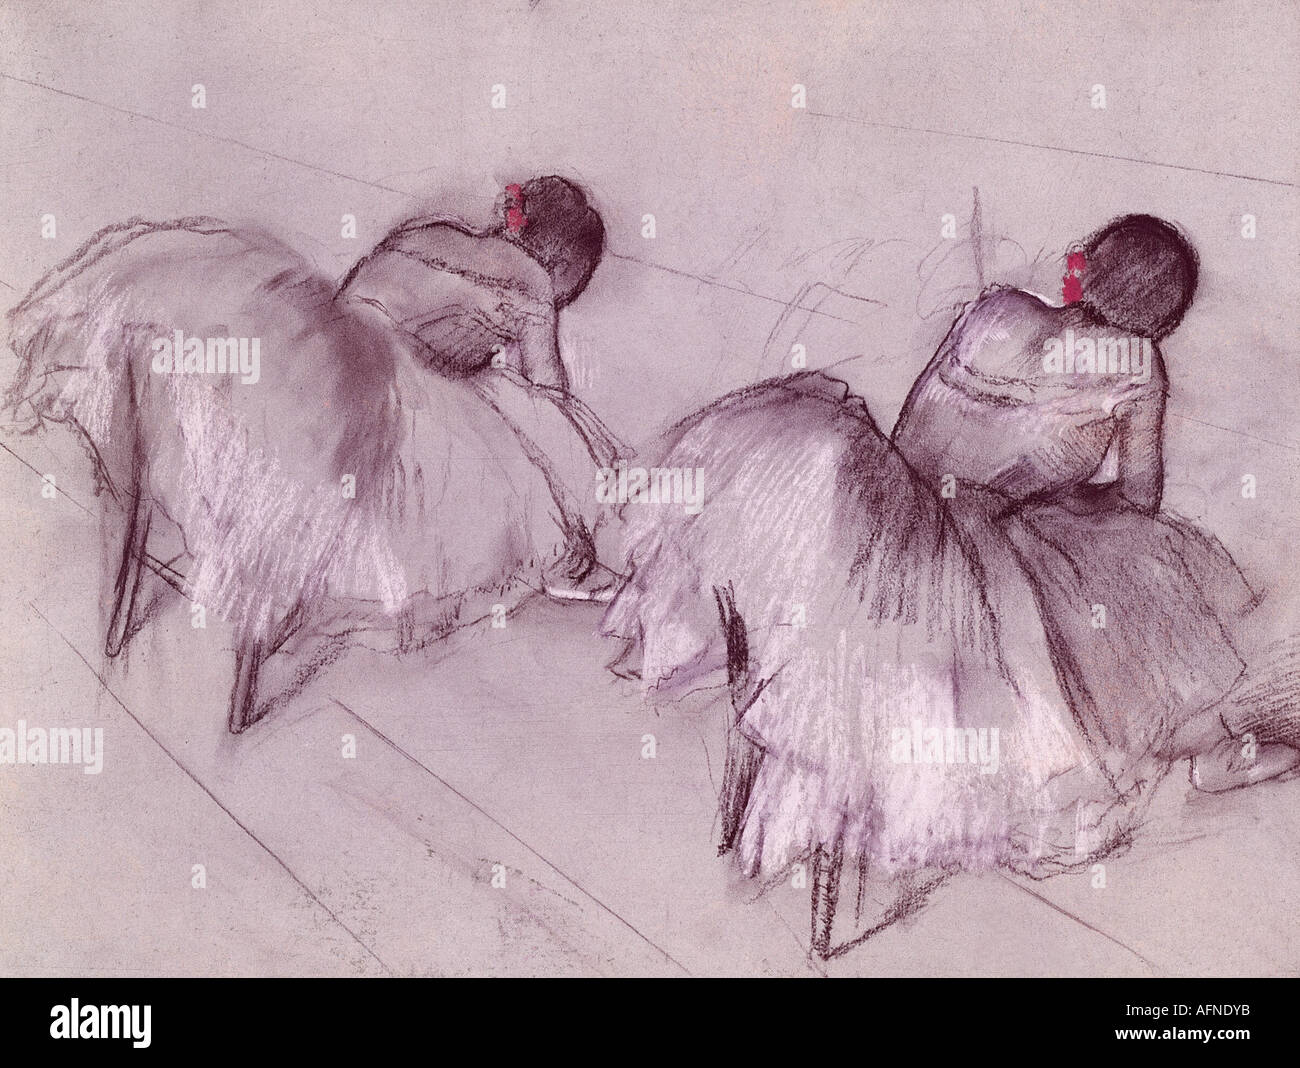 """""""fine arts, Degas, Edgar, (1834 - 1917), painting, """"Two resting dancers"""", pastel on paper, Art House, Zürich, historic, histor Stock Photo"""